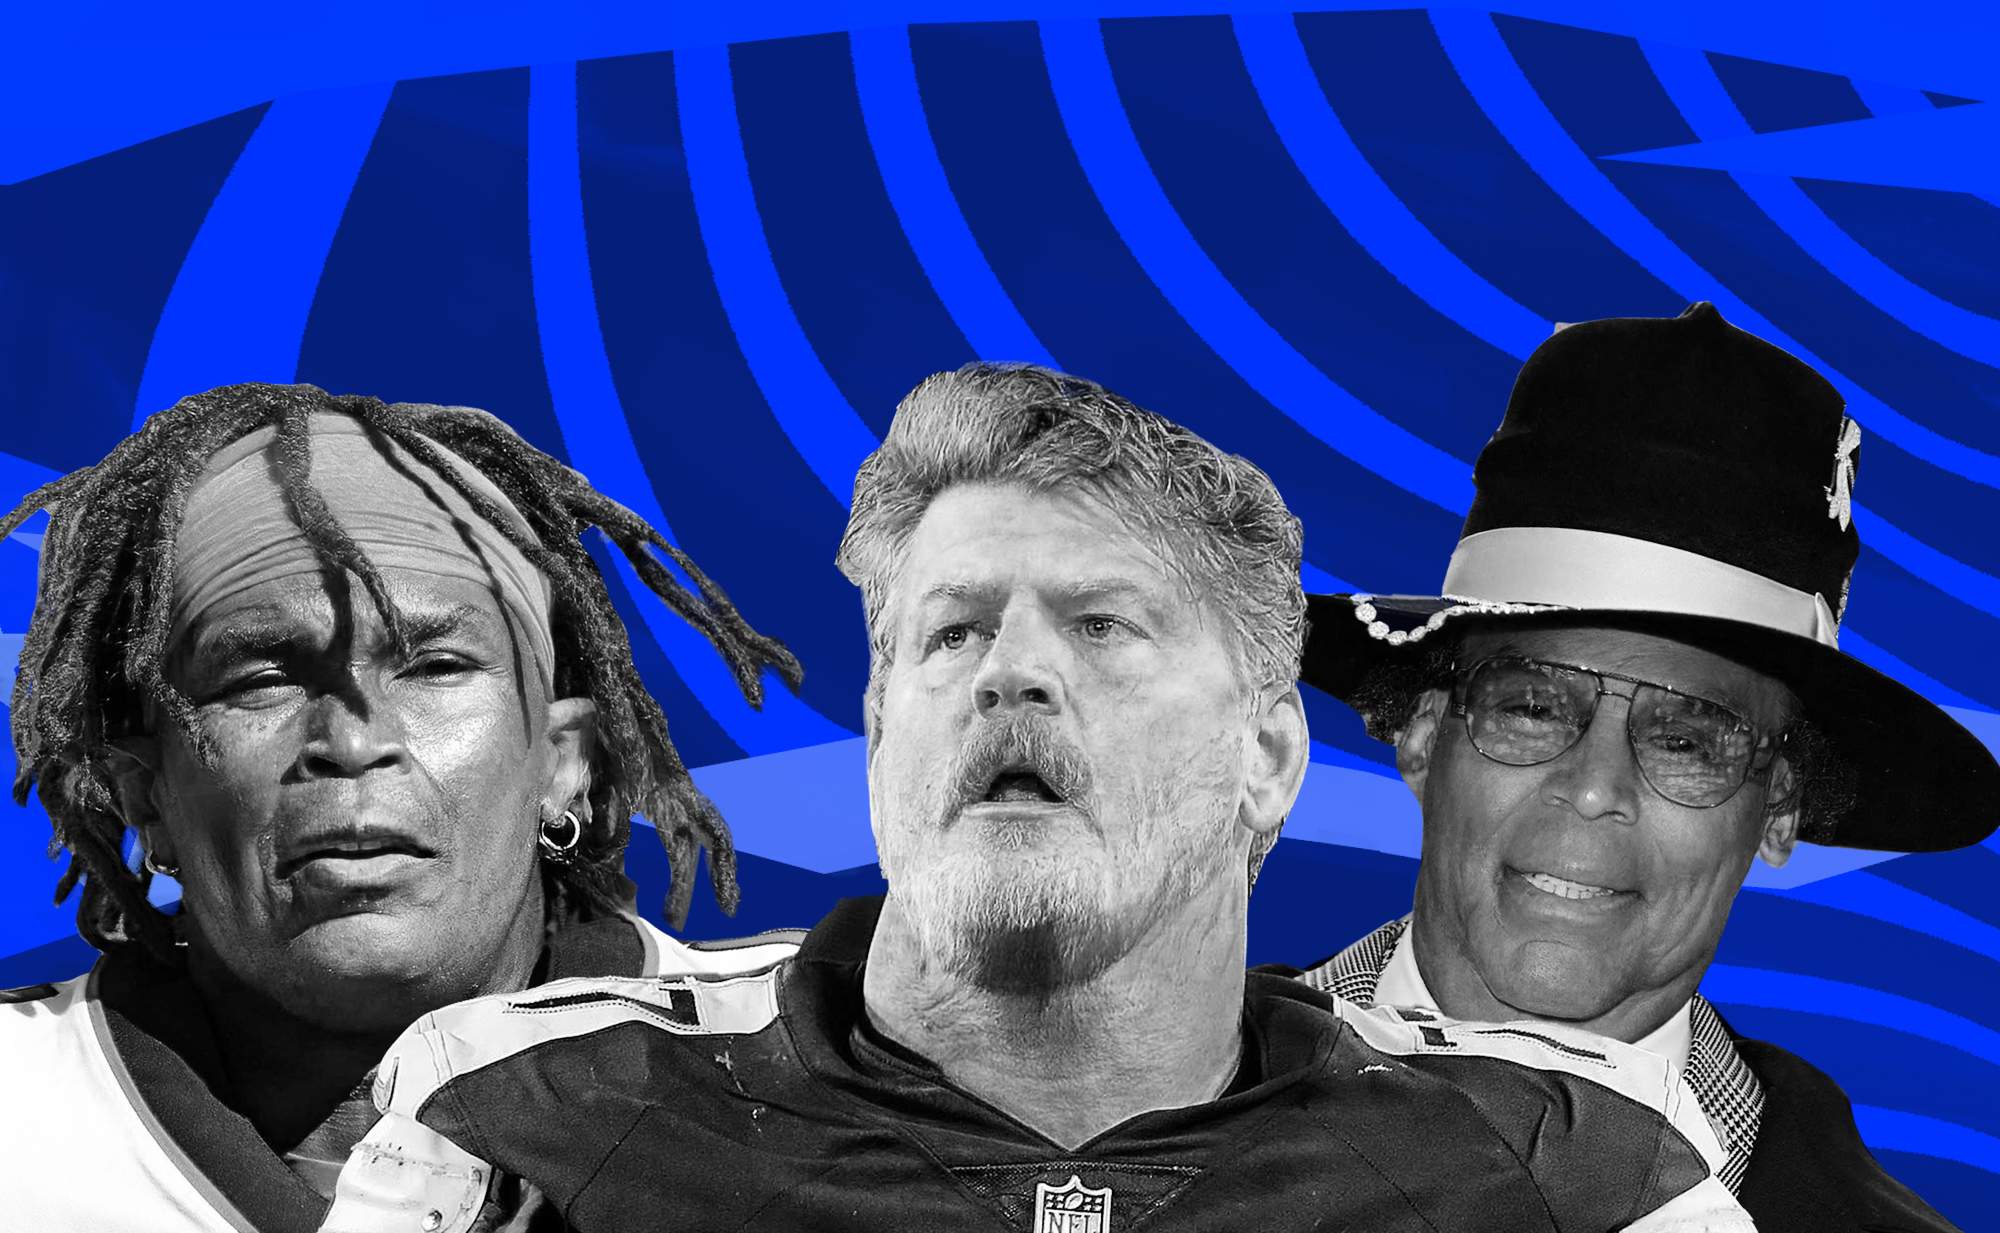 Who will be the NFL's oldest player* in 2029? (*Kickers not included)